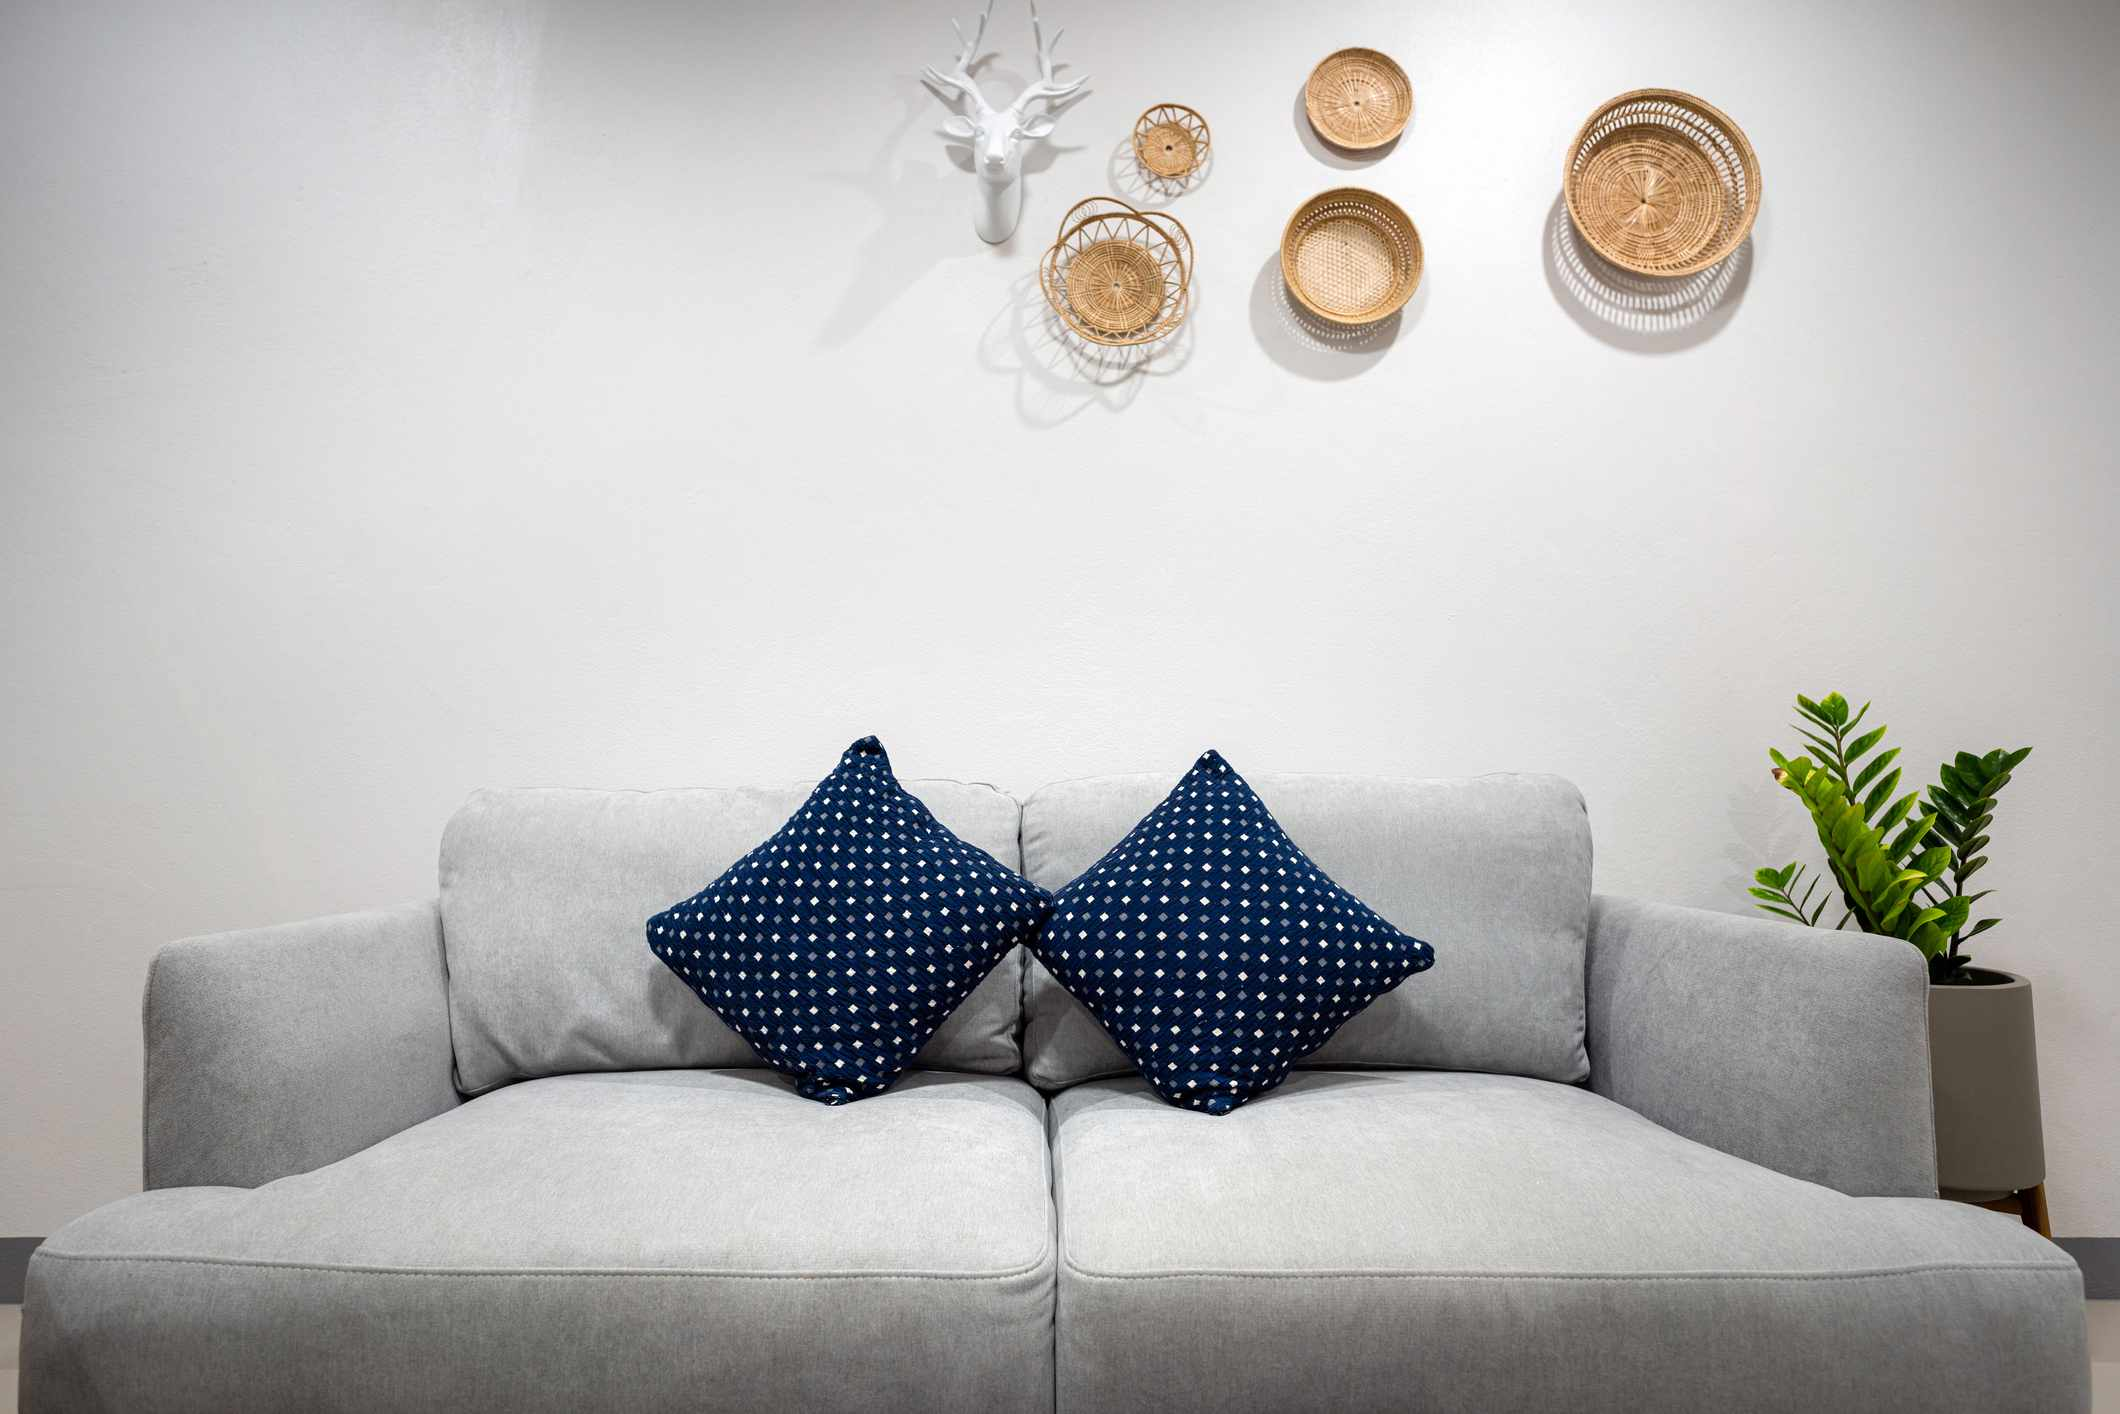 A sofa bed in a living room